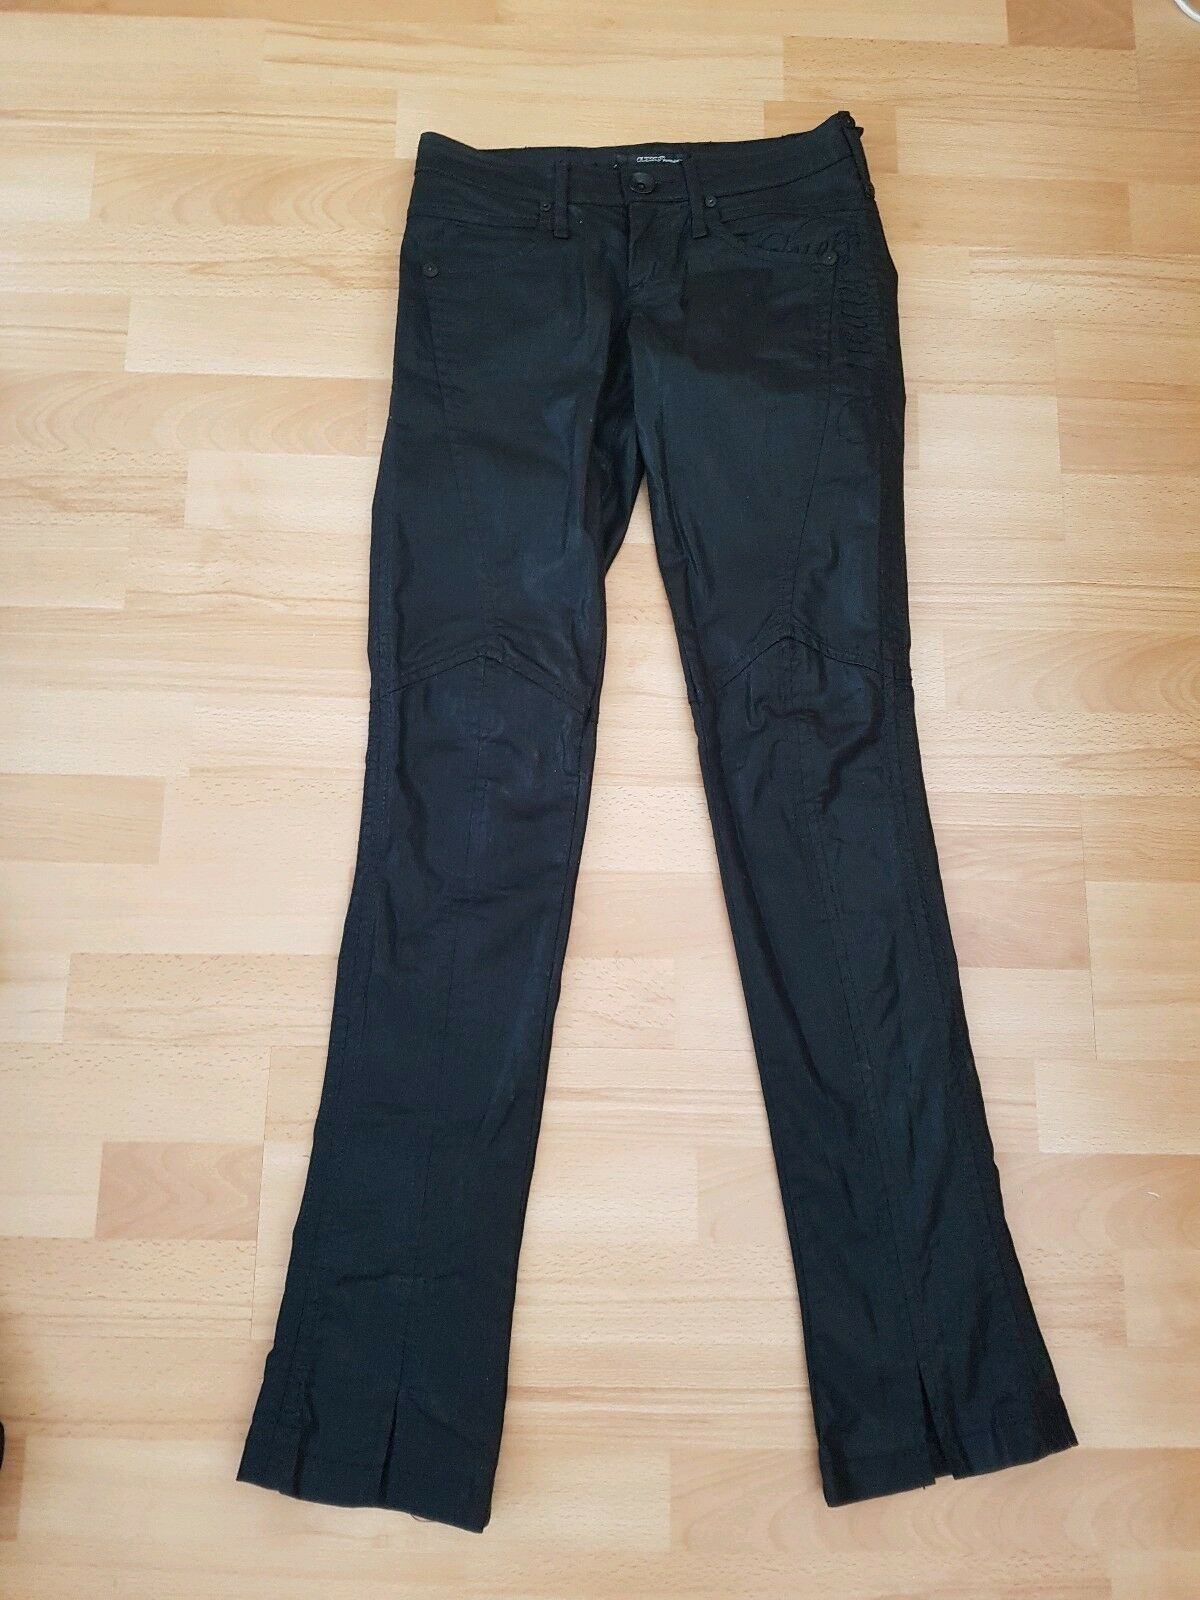 Guess Premium Wet Look Jeans with split ends, size 27 - VGC